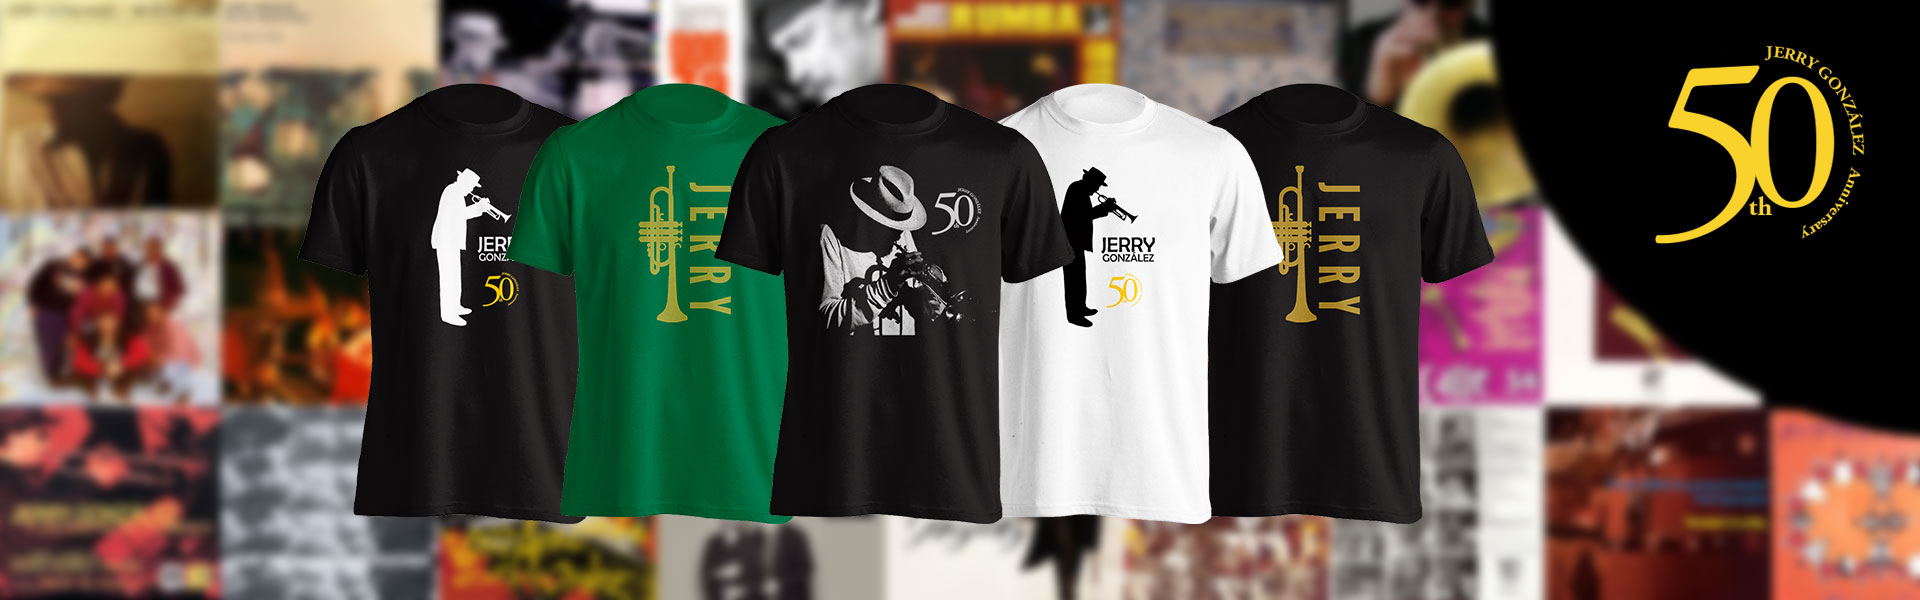 T-shirts 50th Anniversary